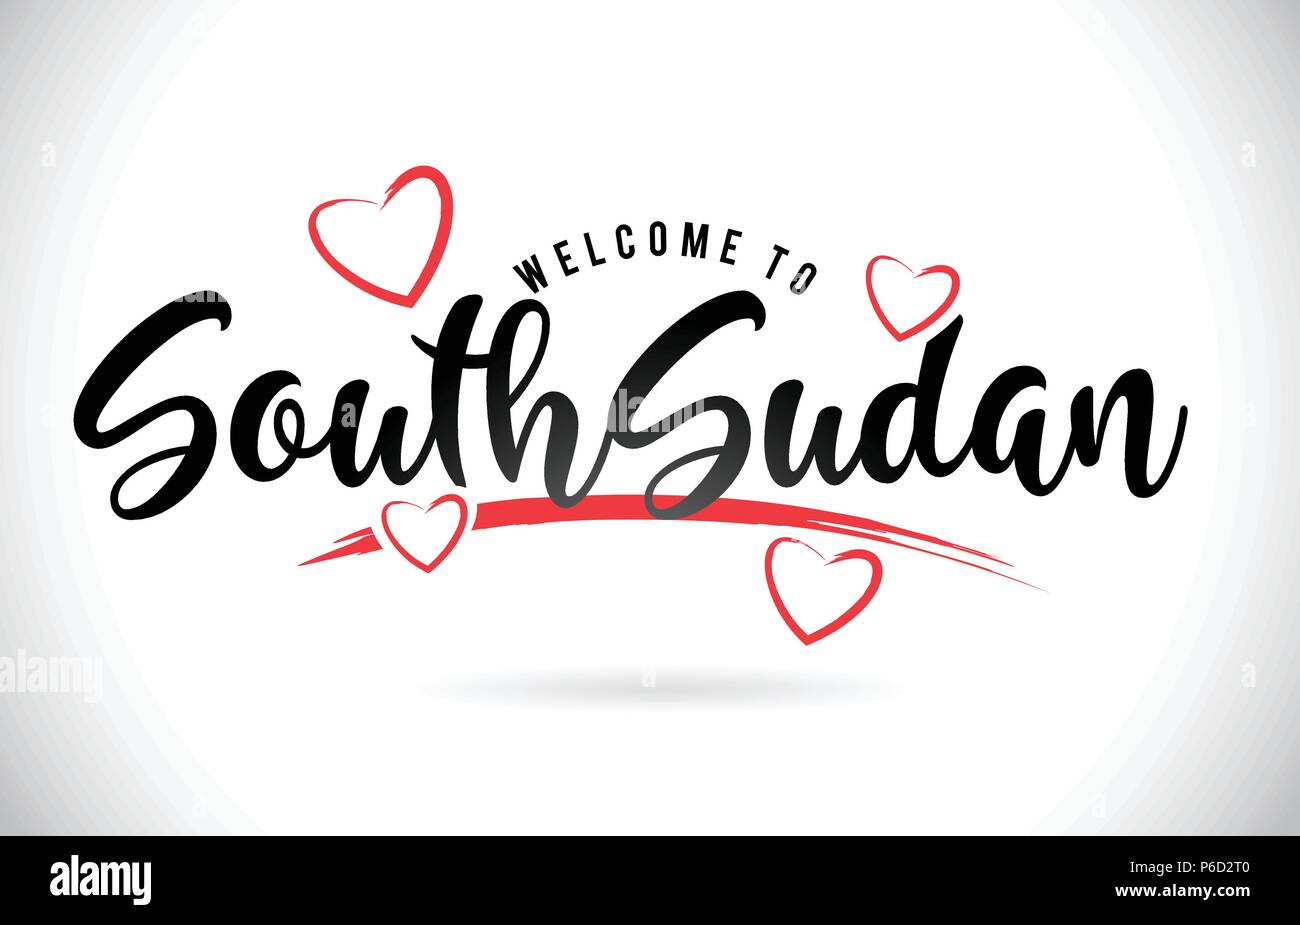 SouthSudan Welcome To Word Text with Handwritten Font and Red Love Hearts Vector Image Illustration Eps. - Stock Image